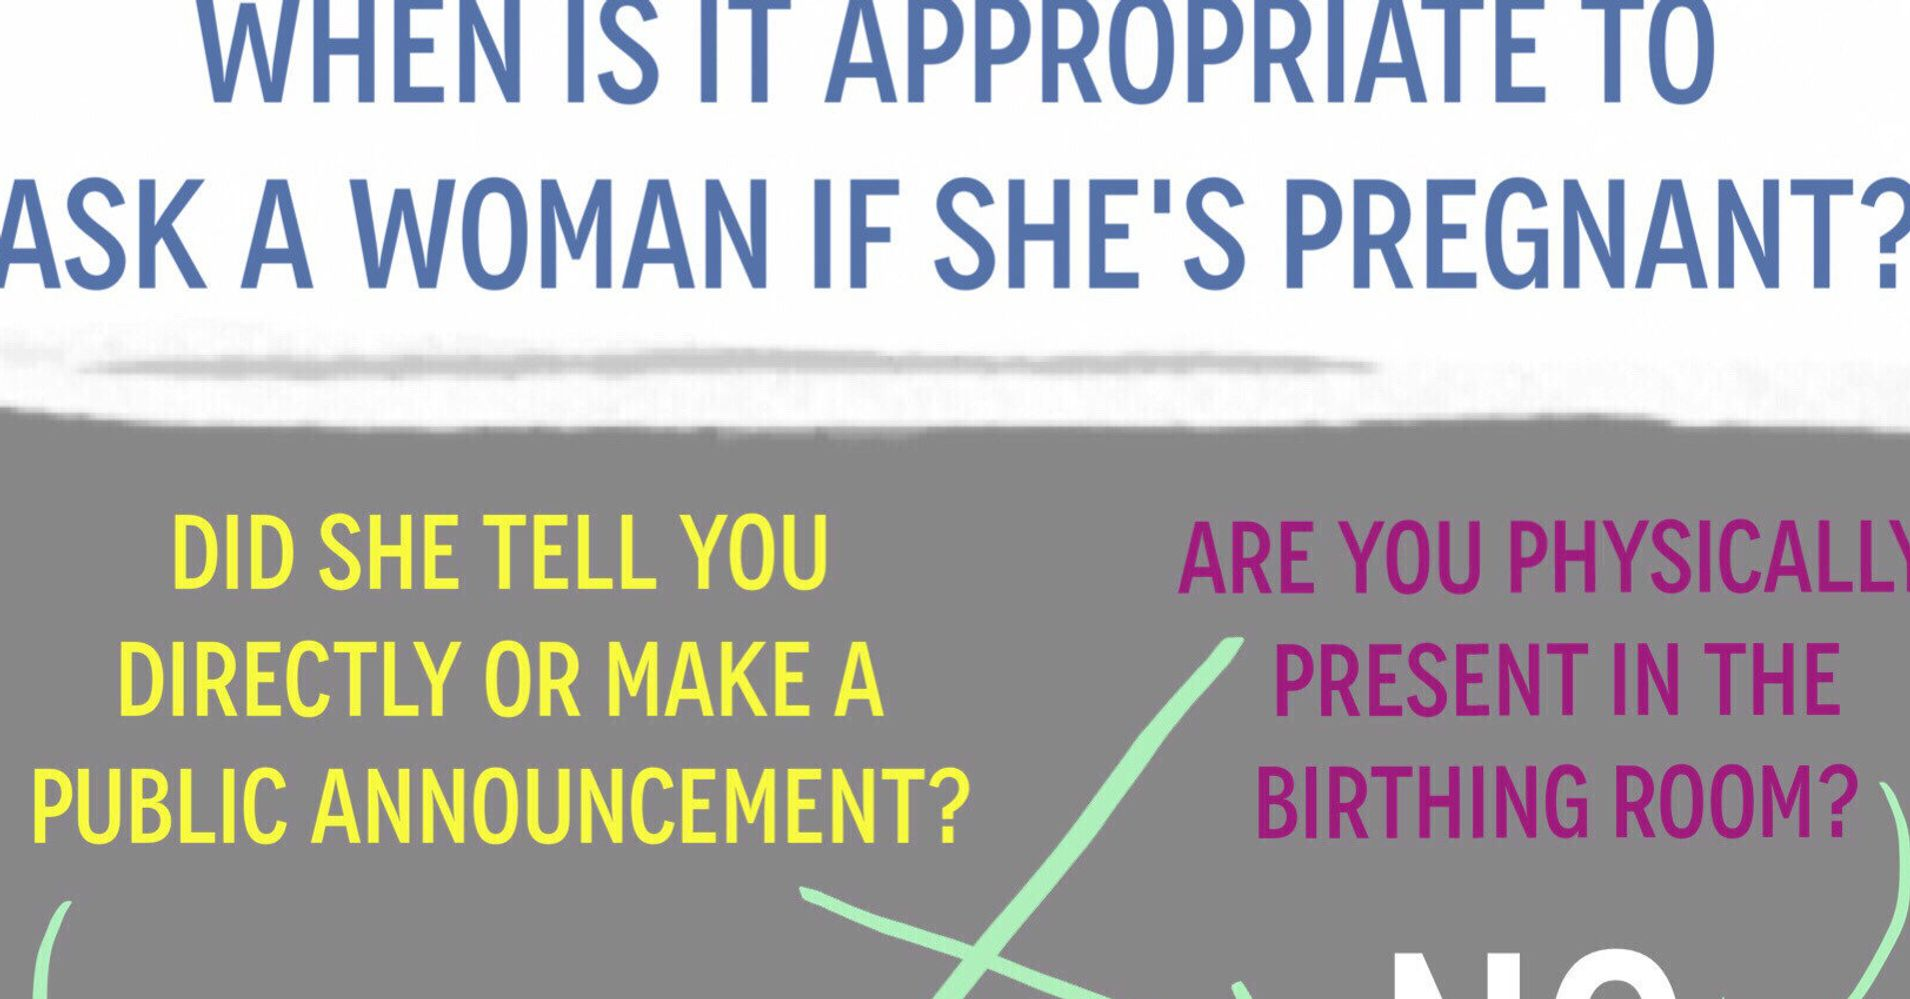 when does a woman find out she is pregnant